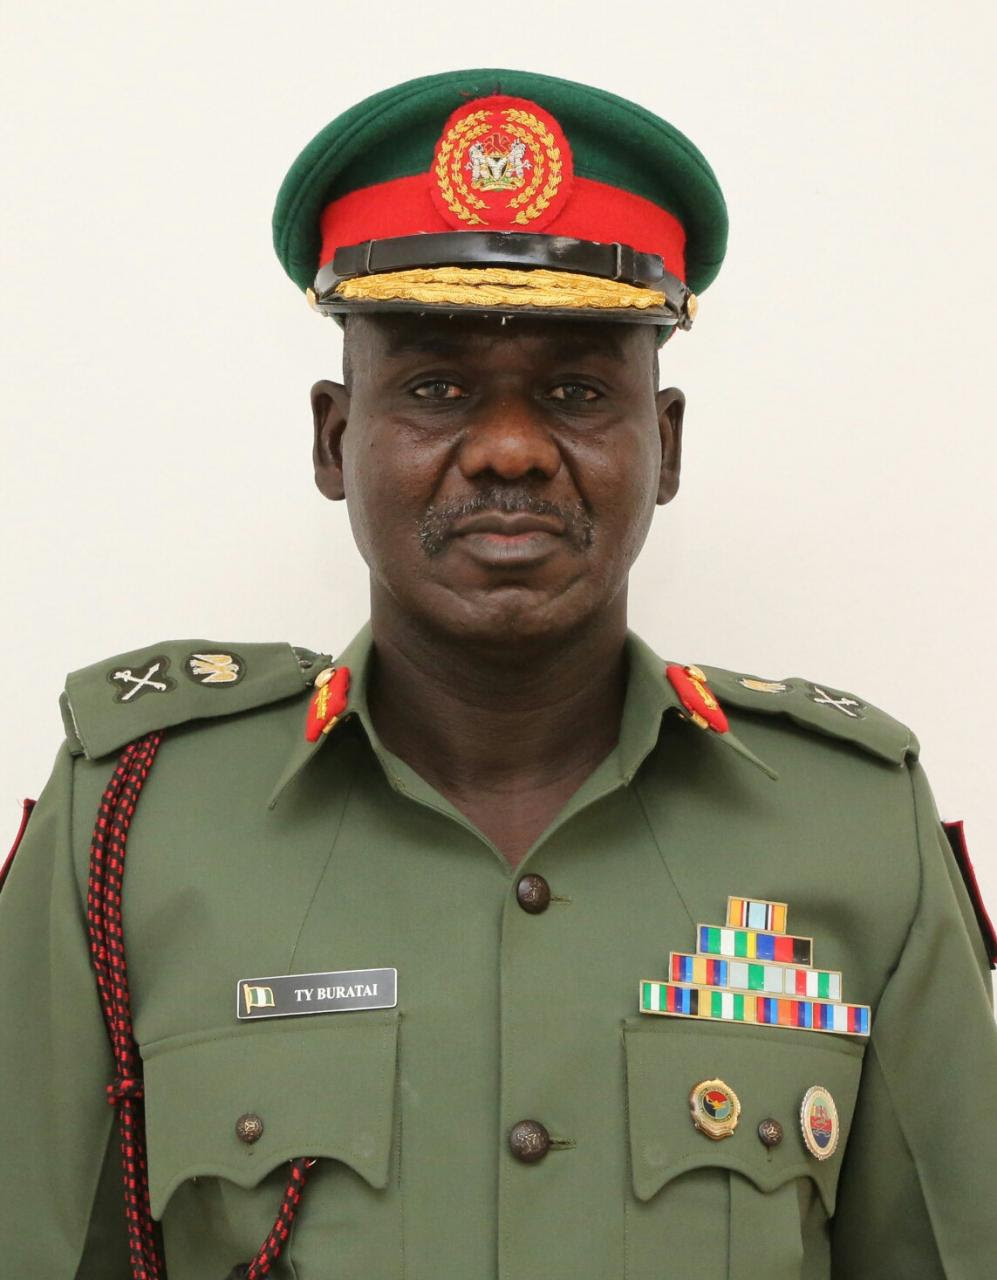 Soldiers insulting Chief of Army Staff Tukur Buratai in viral video have been identified and would undergo observation and counselling - Defence Headquarters